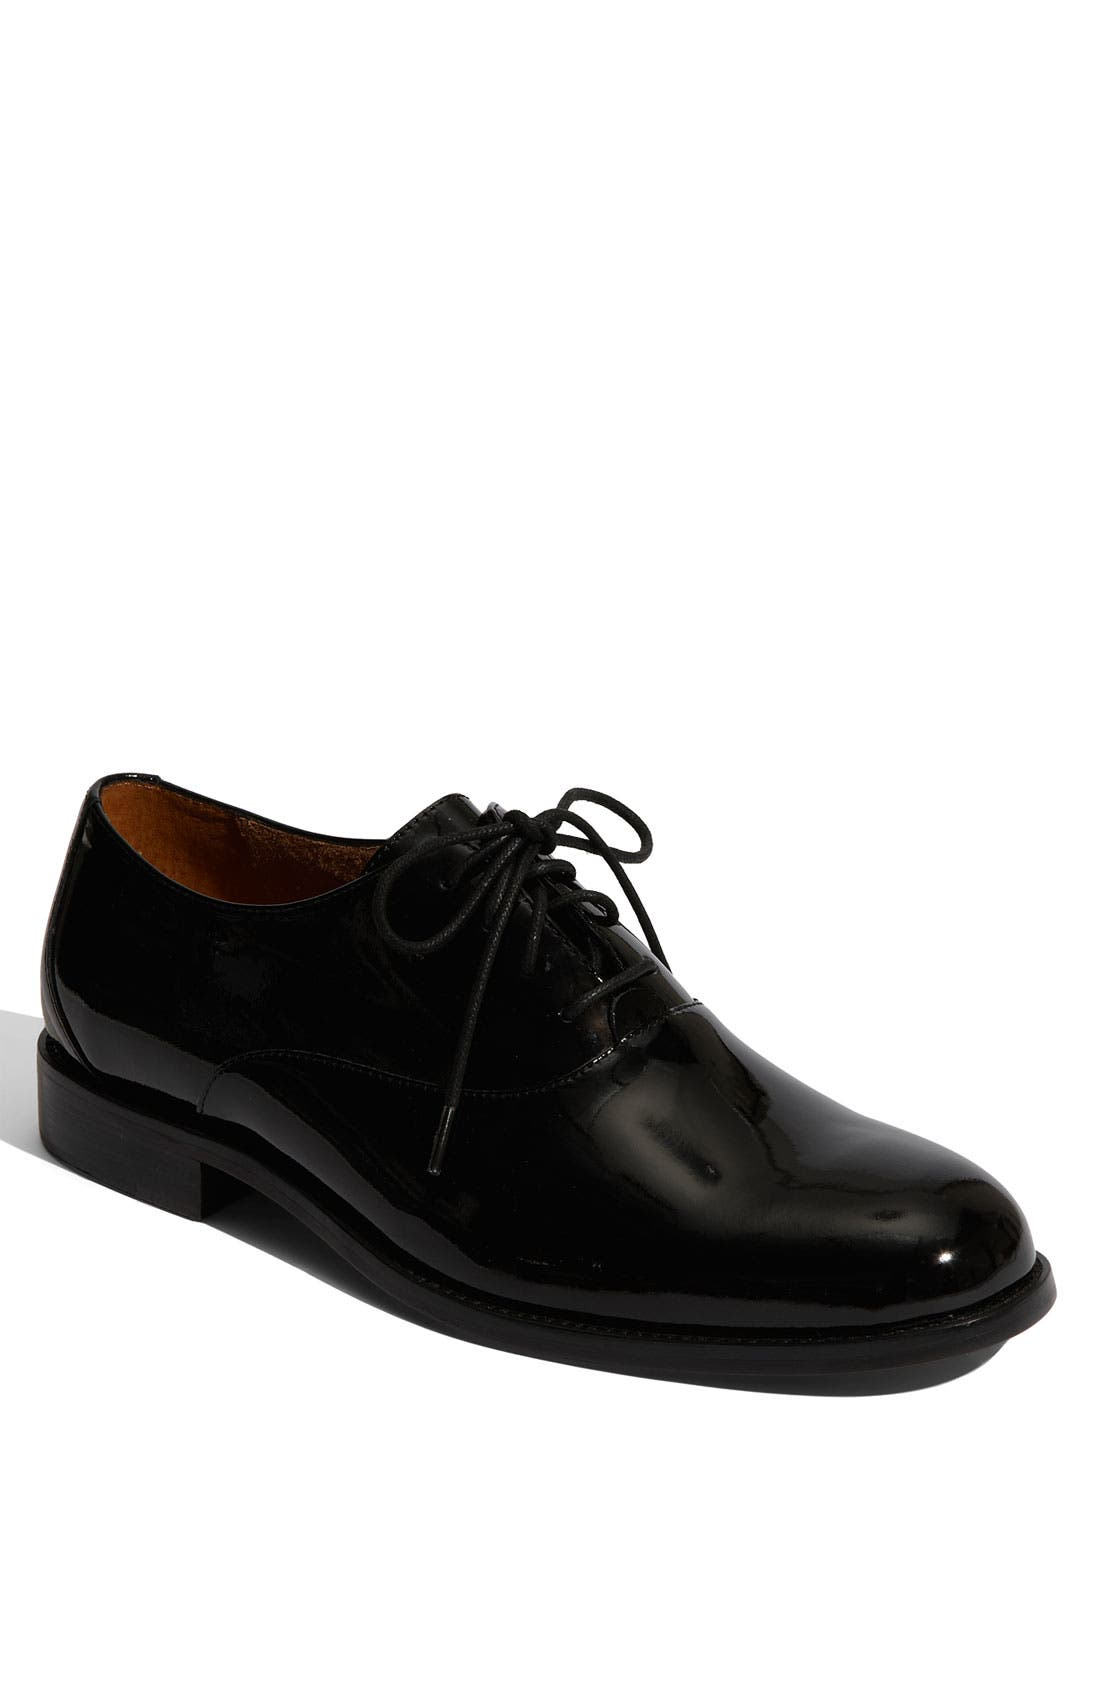 Main Image - Florsheim 'Kingston' Patent Leather Oxford (Men)